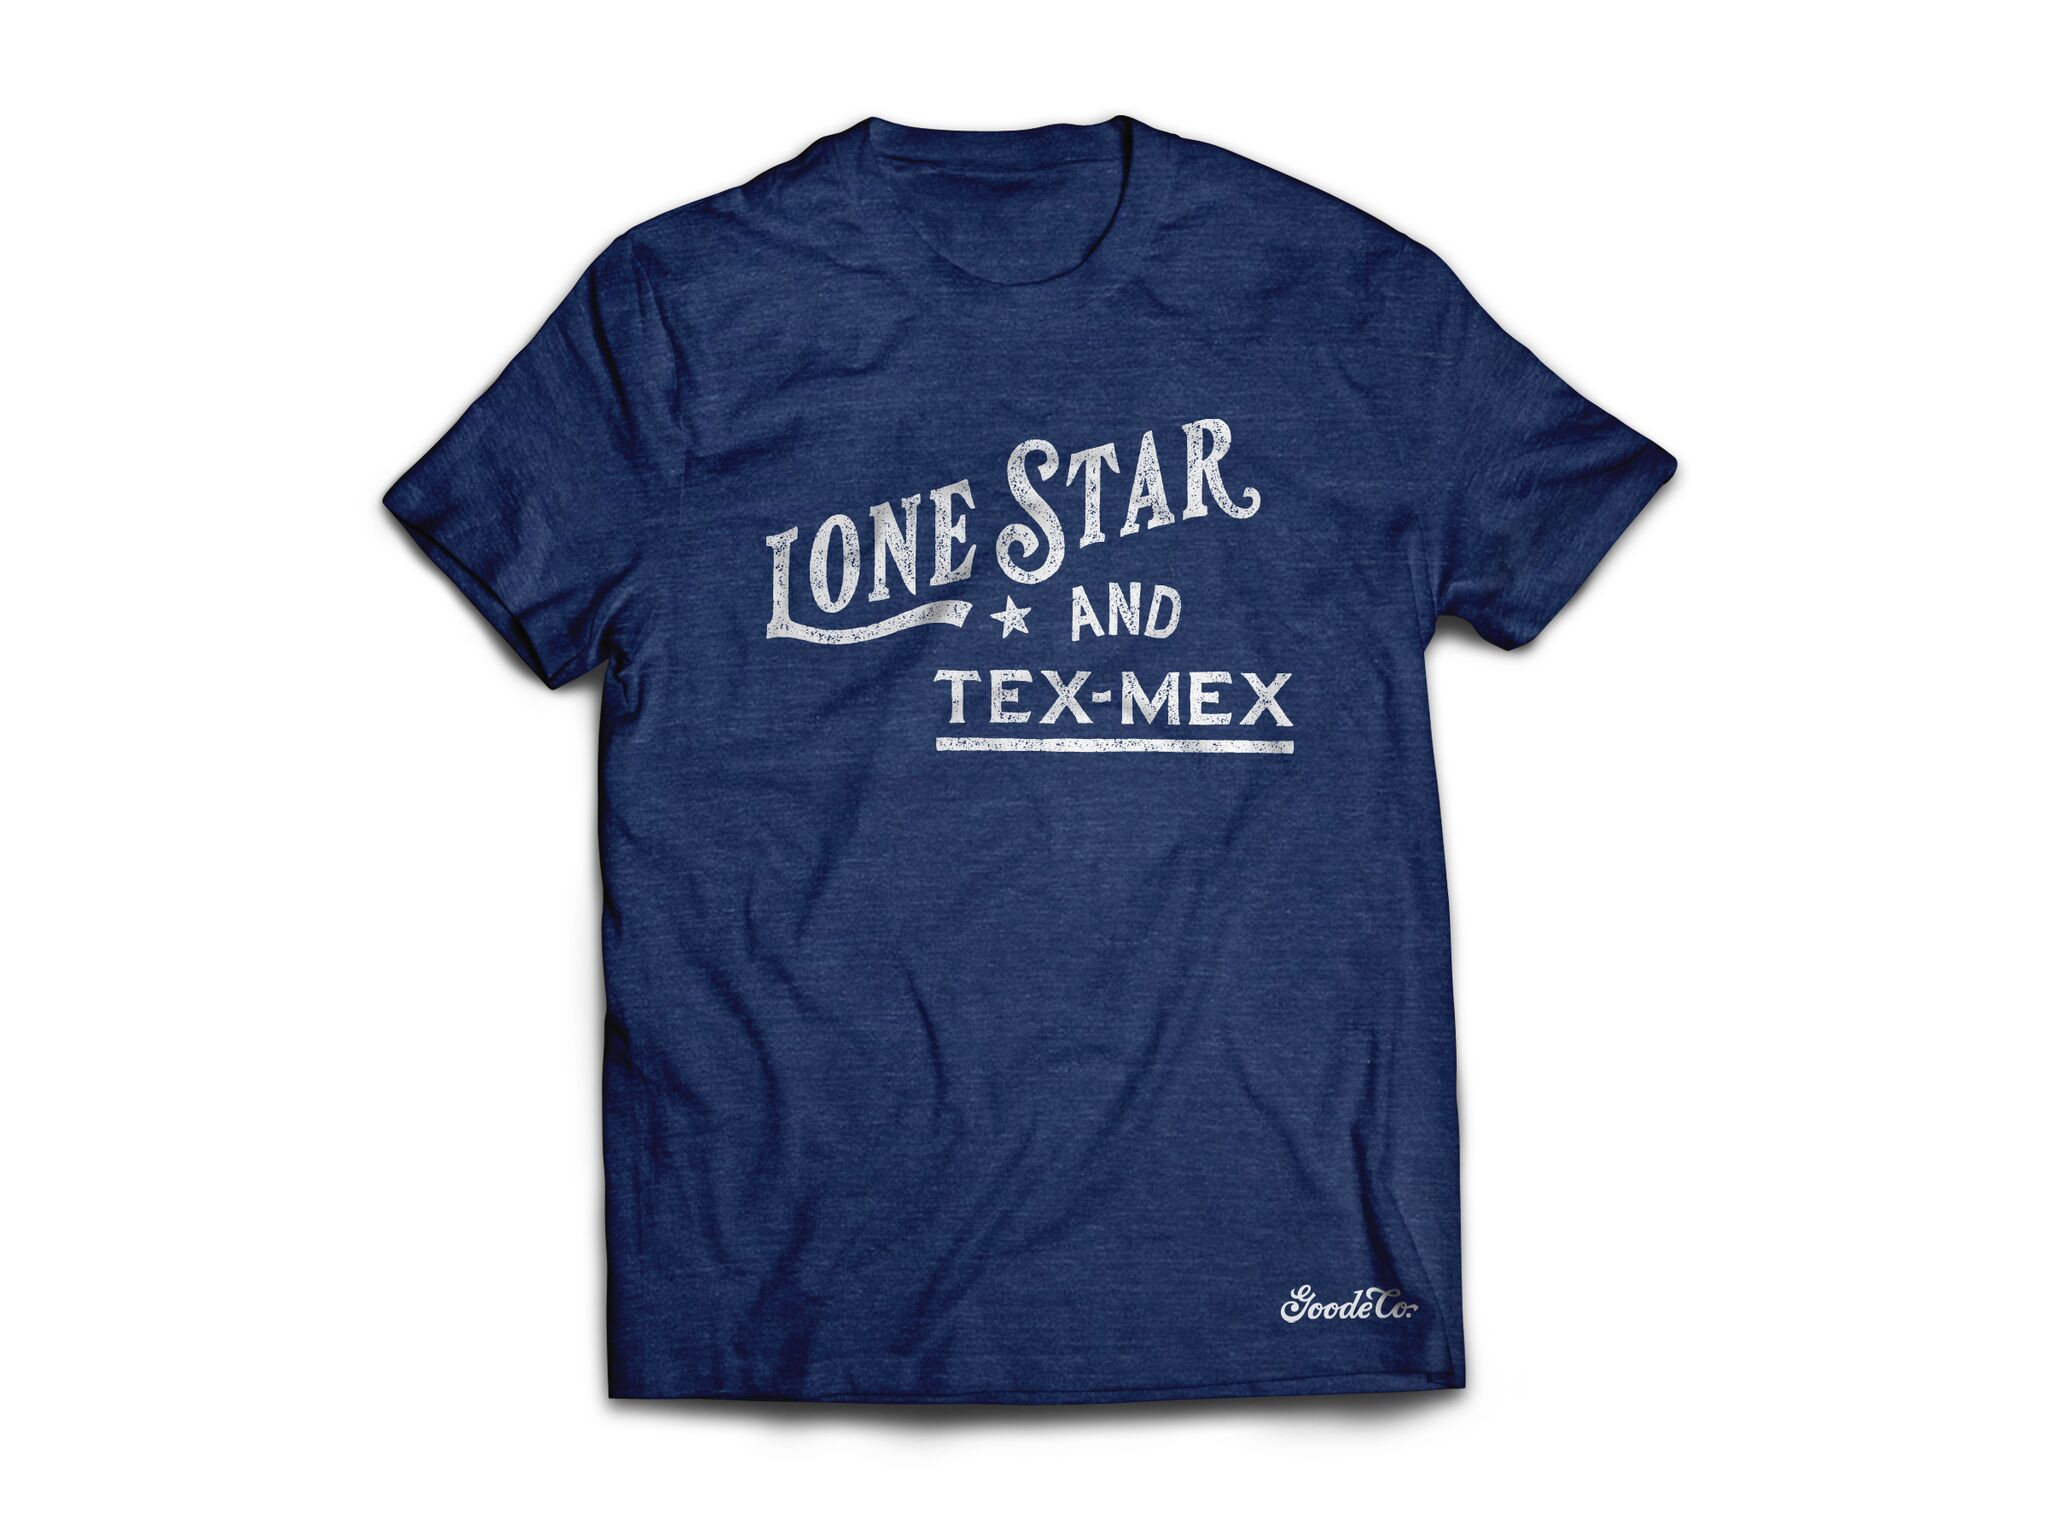 """Product photo for Goode Co's """"Lone Star & Tex-Mex"""" t-shirt."""